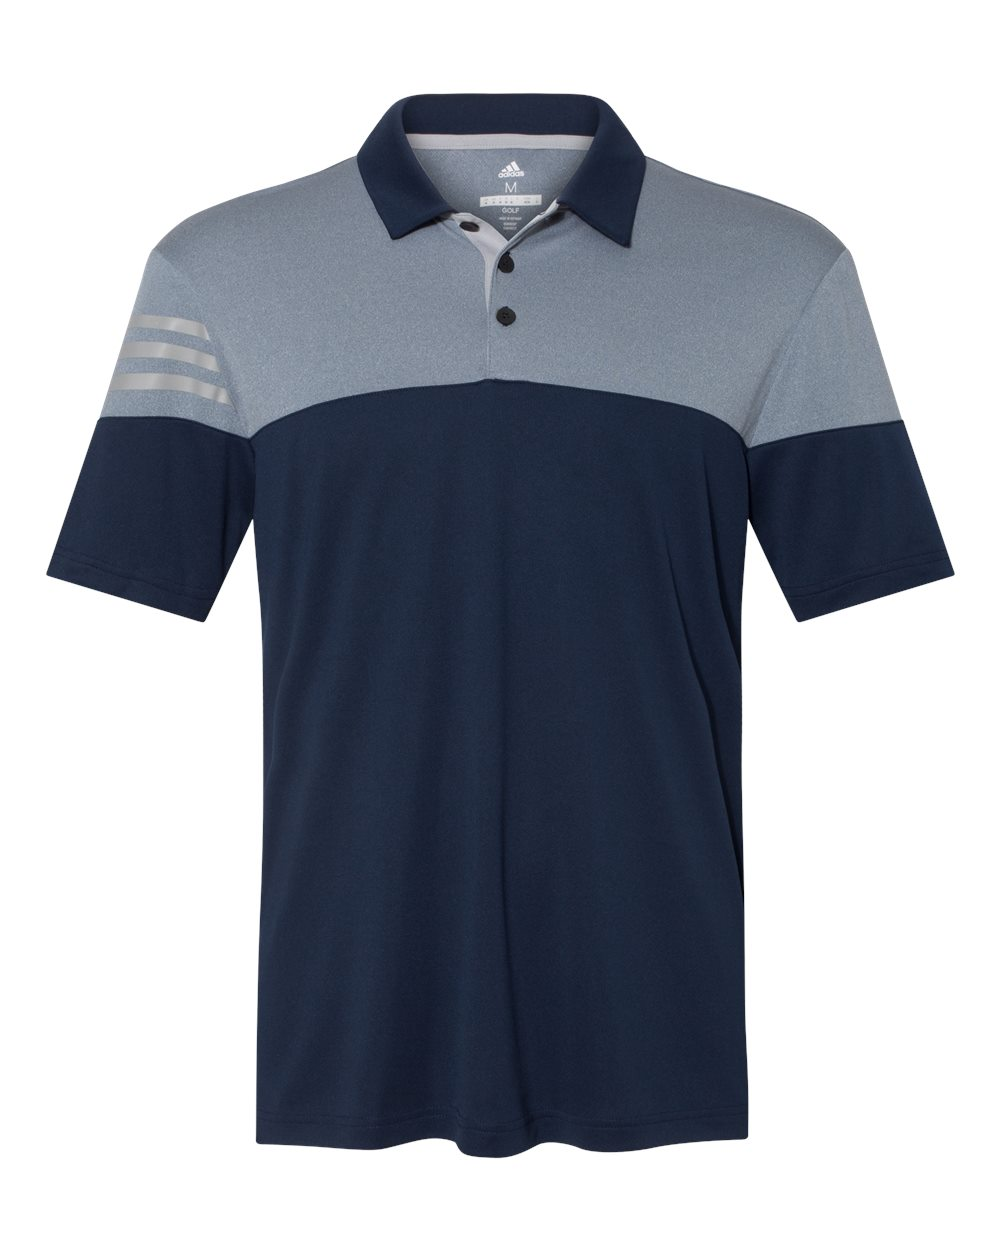 ADIDAS MEN'S HEATHERED 3 STRIPES POLO